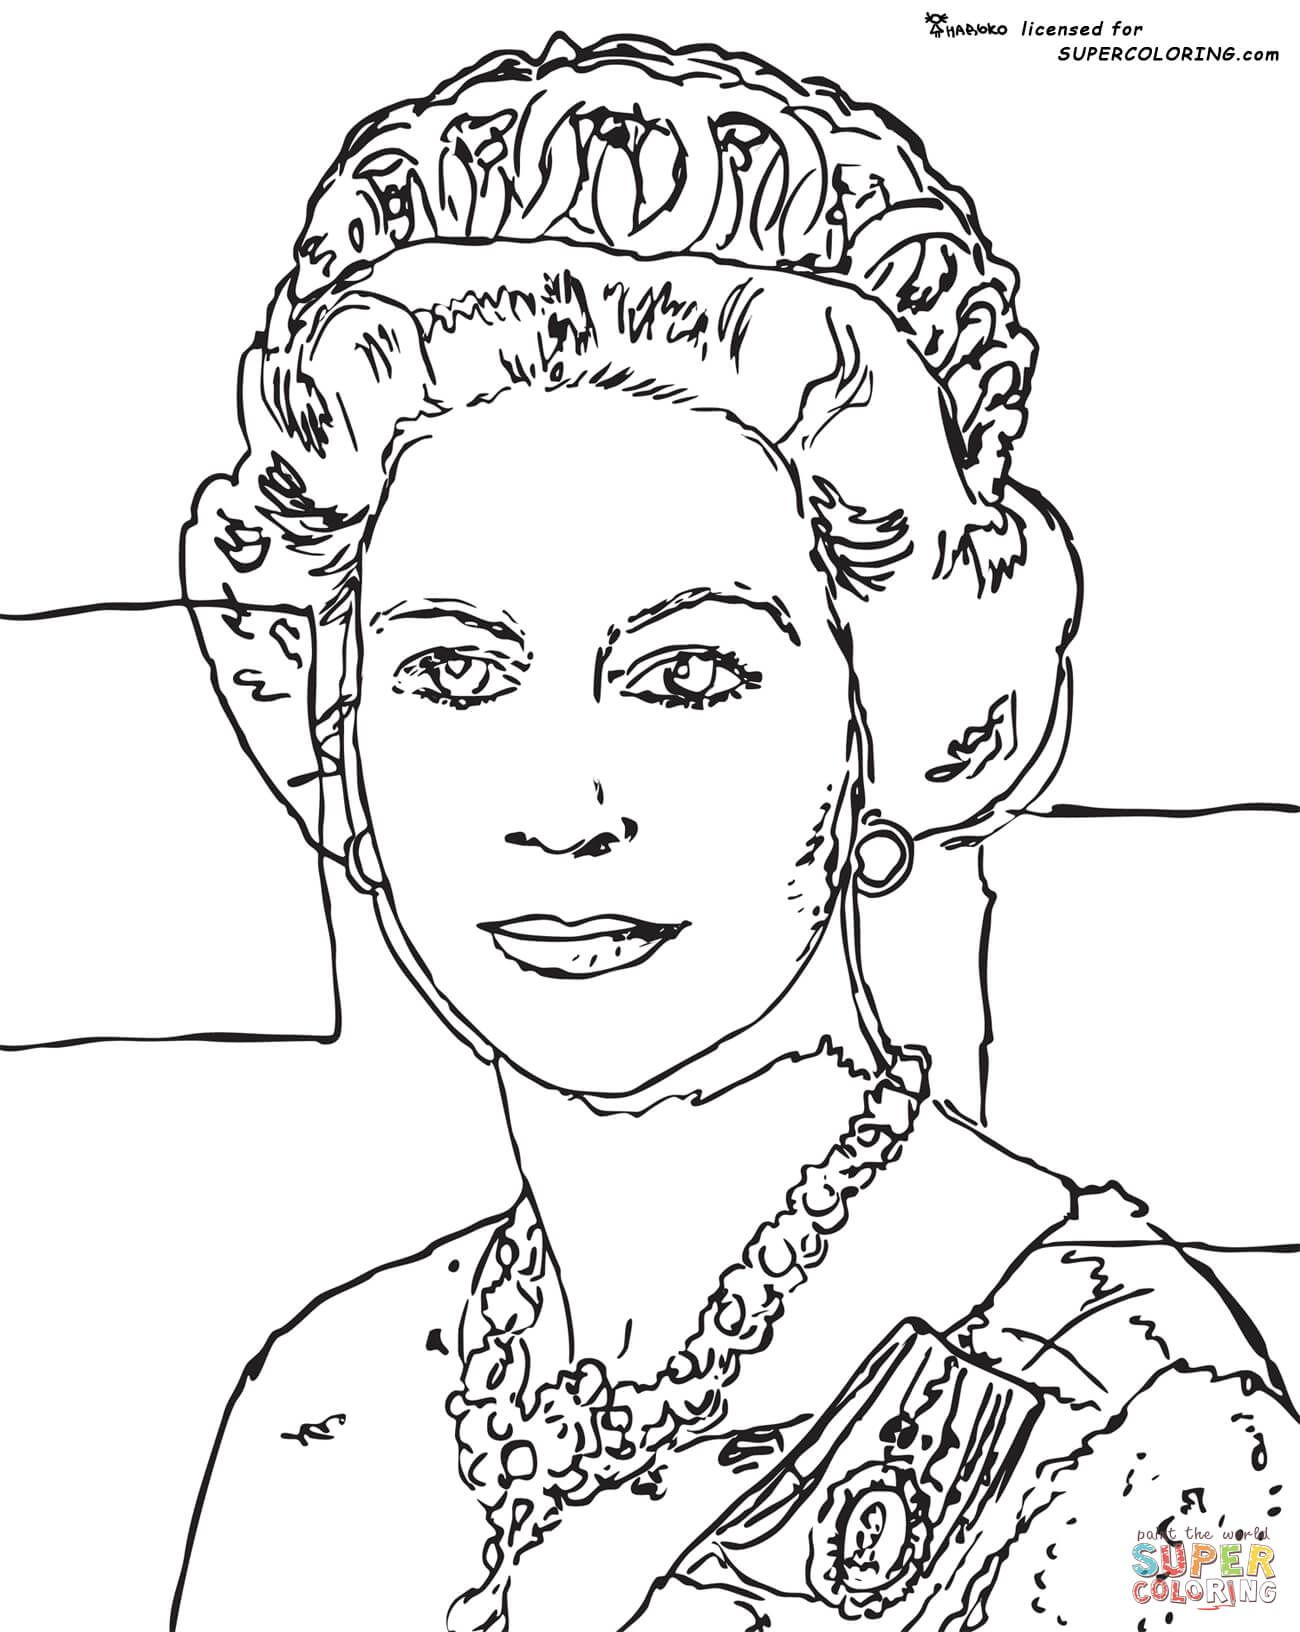 Queen Elizabeth By Andy Warhol | Super Coloring | FAME IV | Pinterest